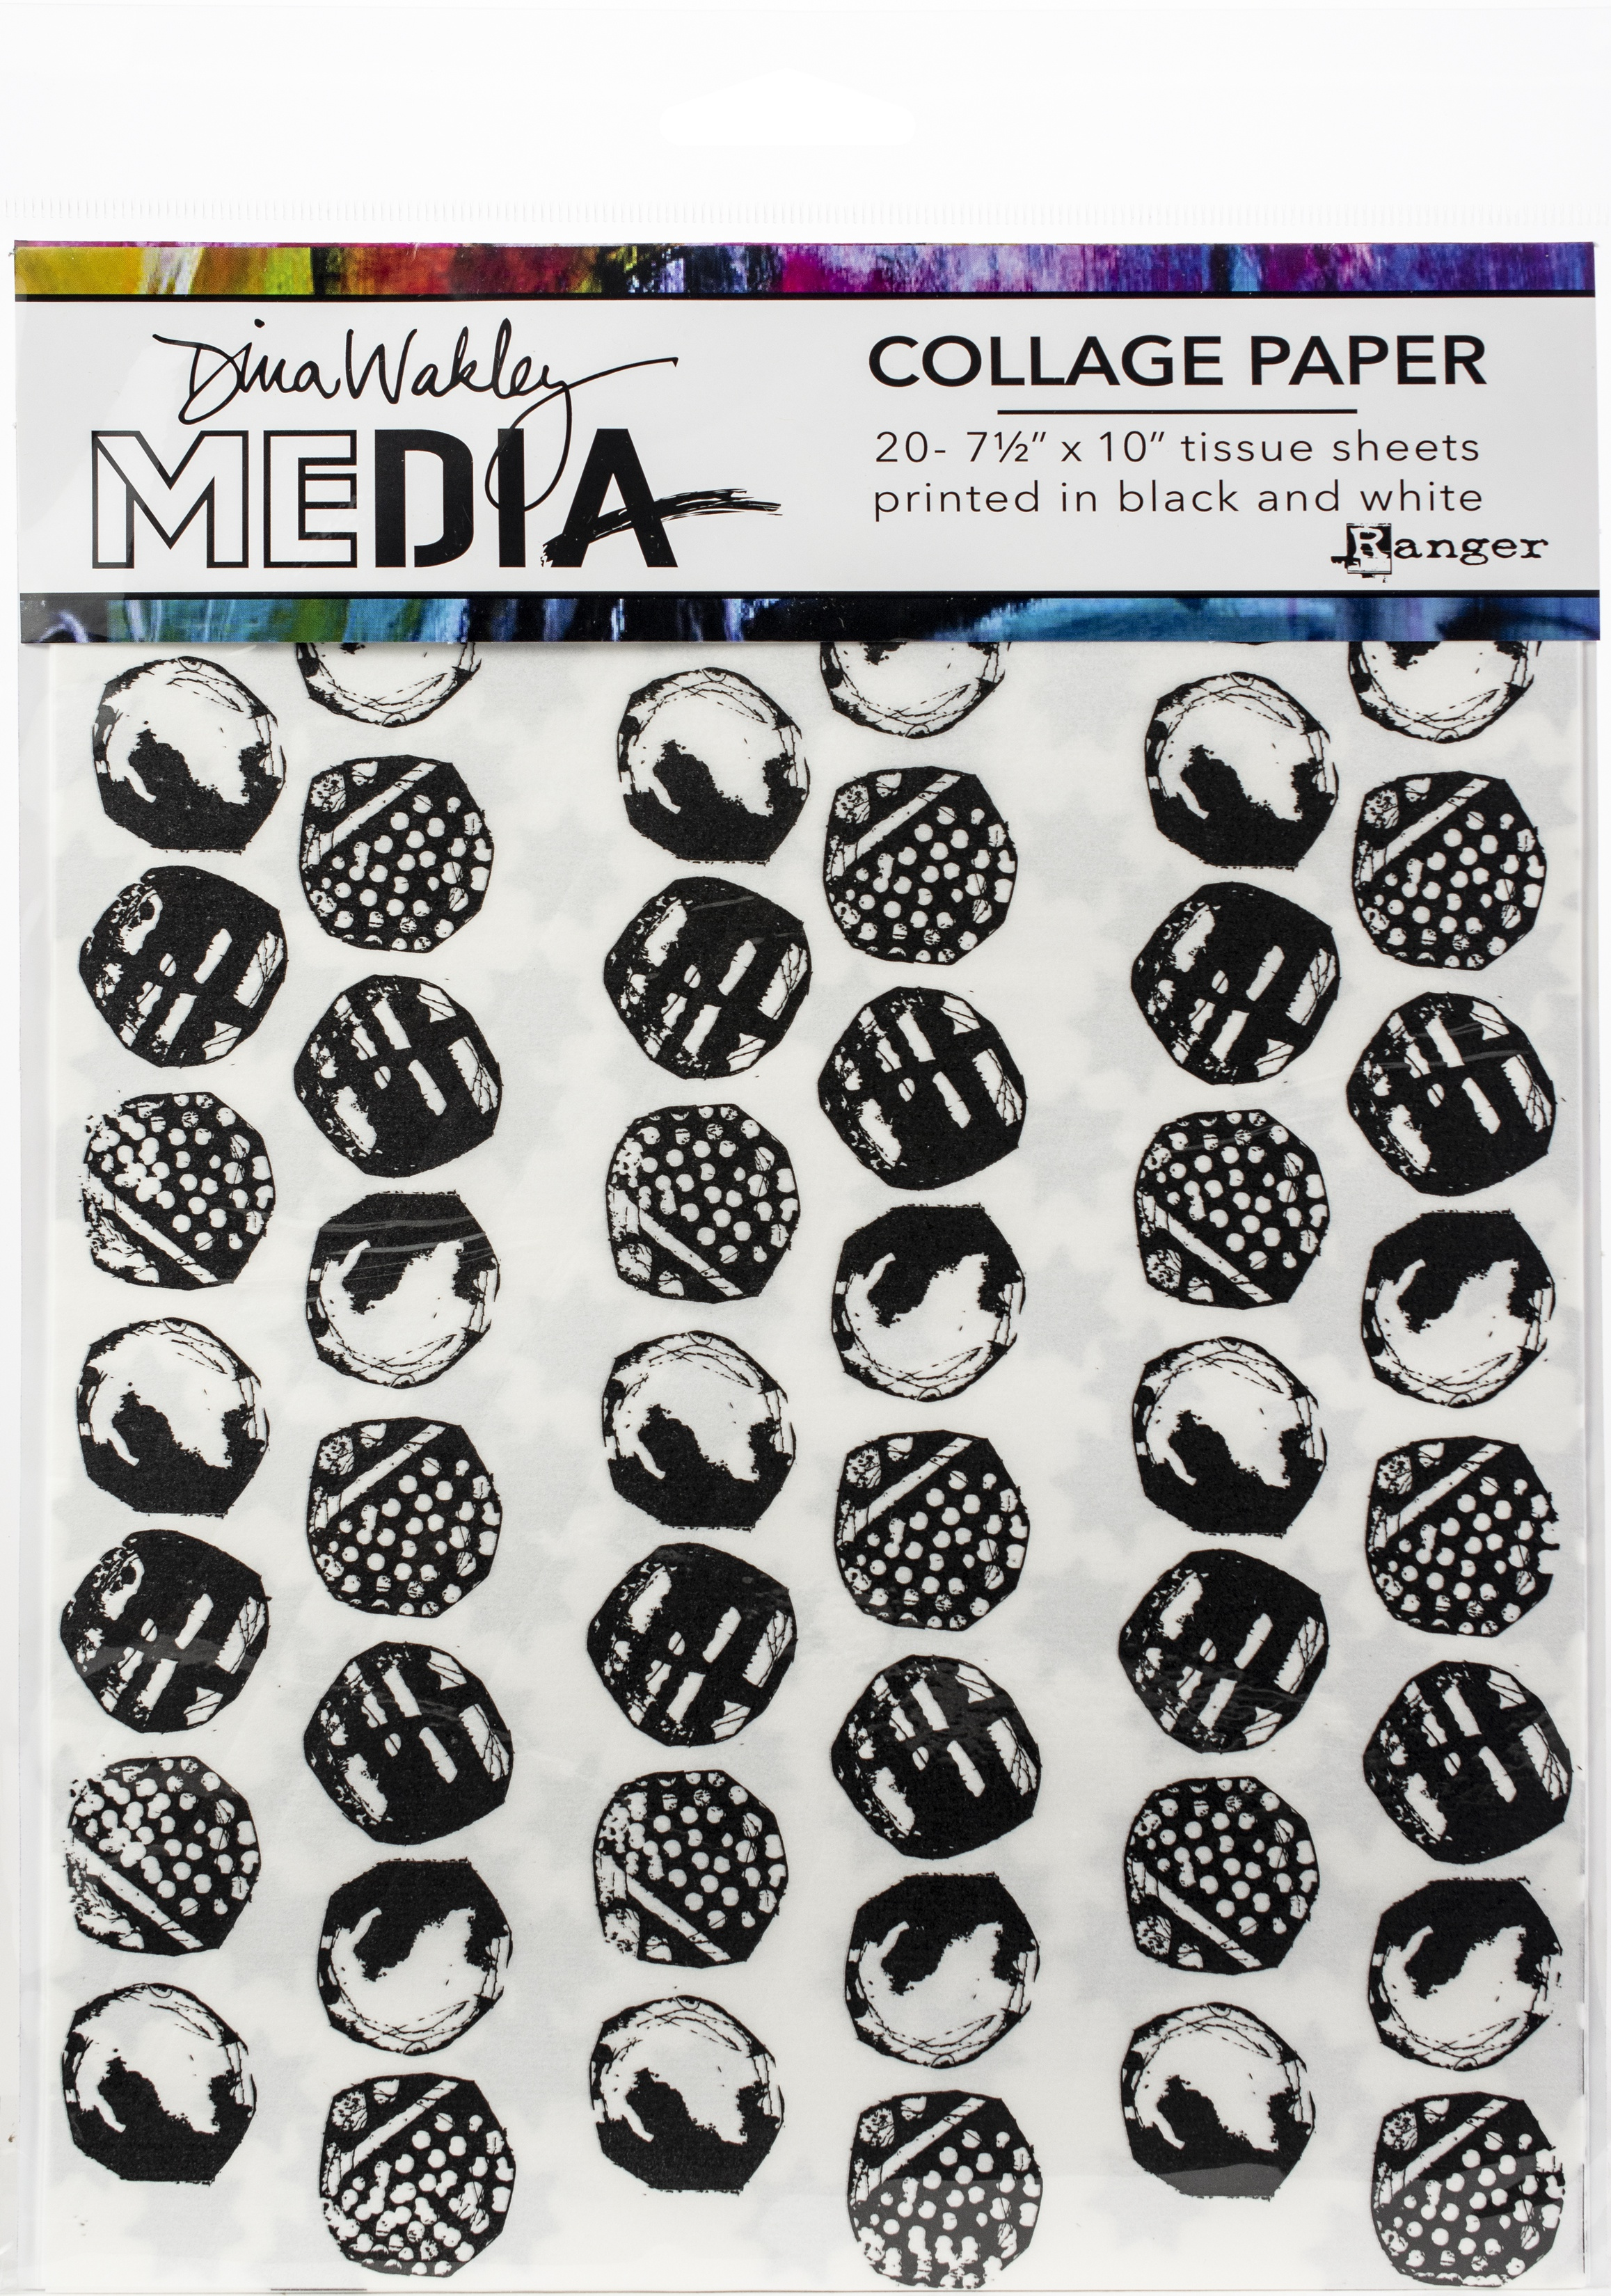 Dina Wakley Media Collage Tissue Paper  7.5X10 20/Pkg-Backgrounds